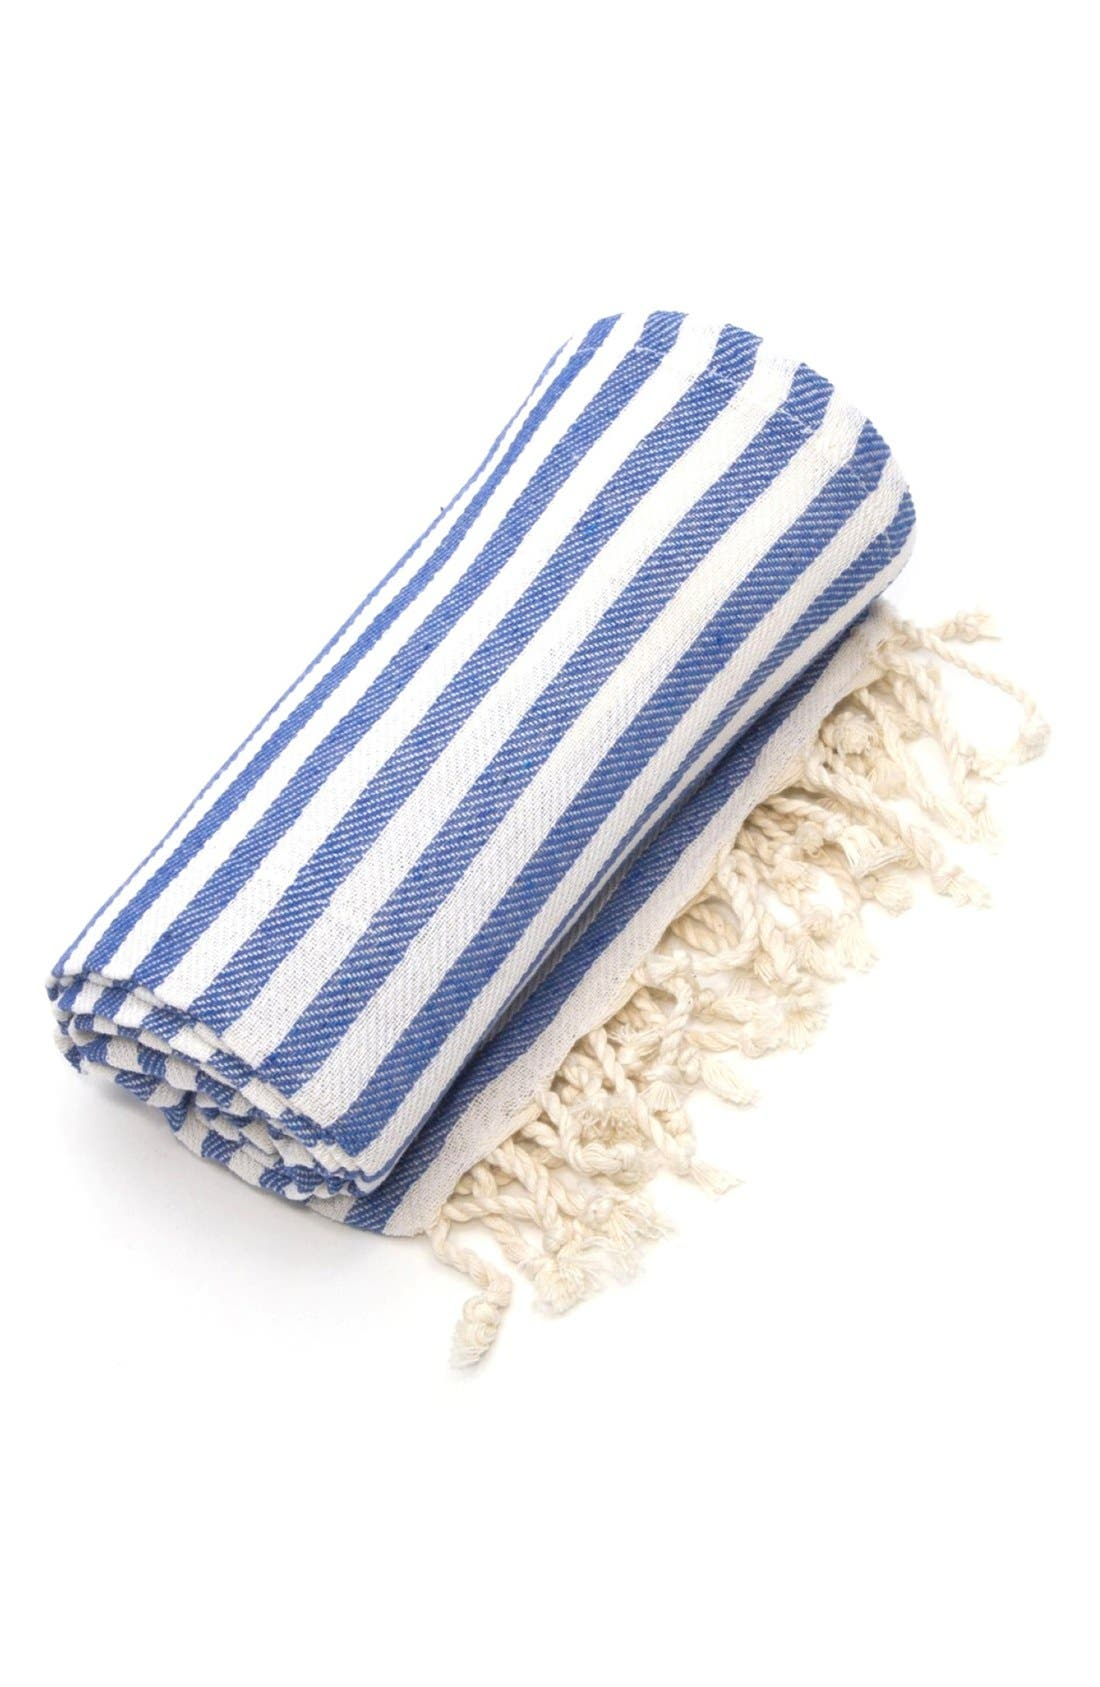 LINUM HOME TEXTILES,                             'Fun in the Sun' Turkish Pestemal Towel,                             Alternate thumbnail 3, color,                             OCEAN BLUE